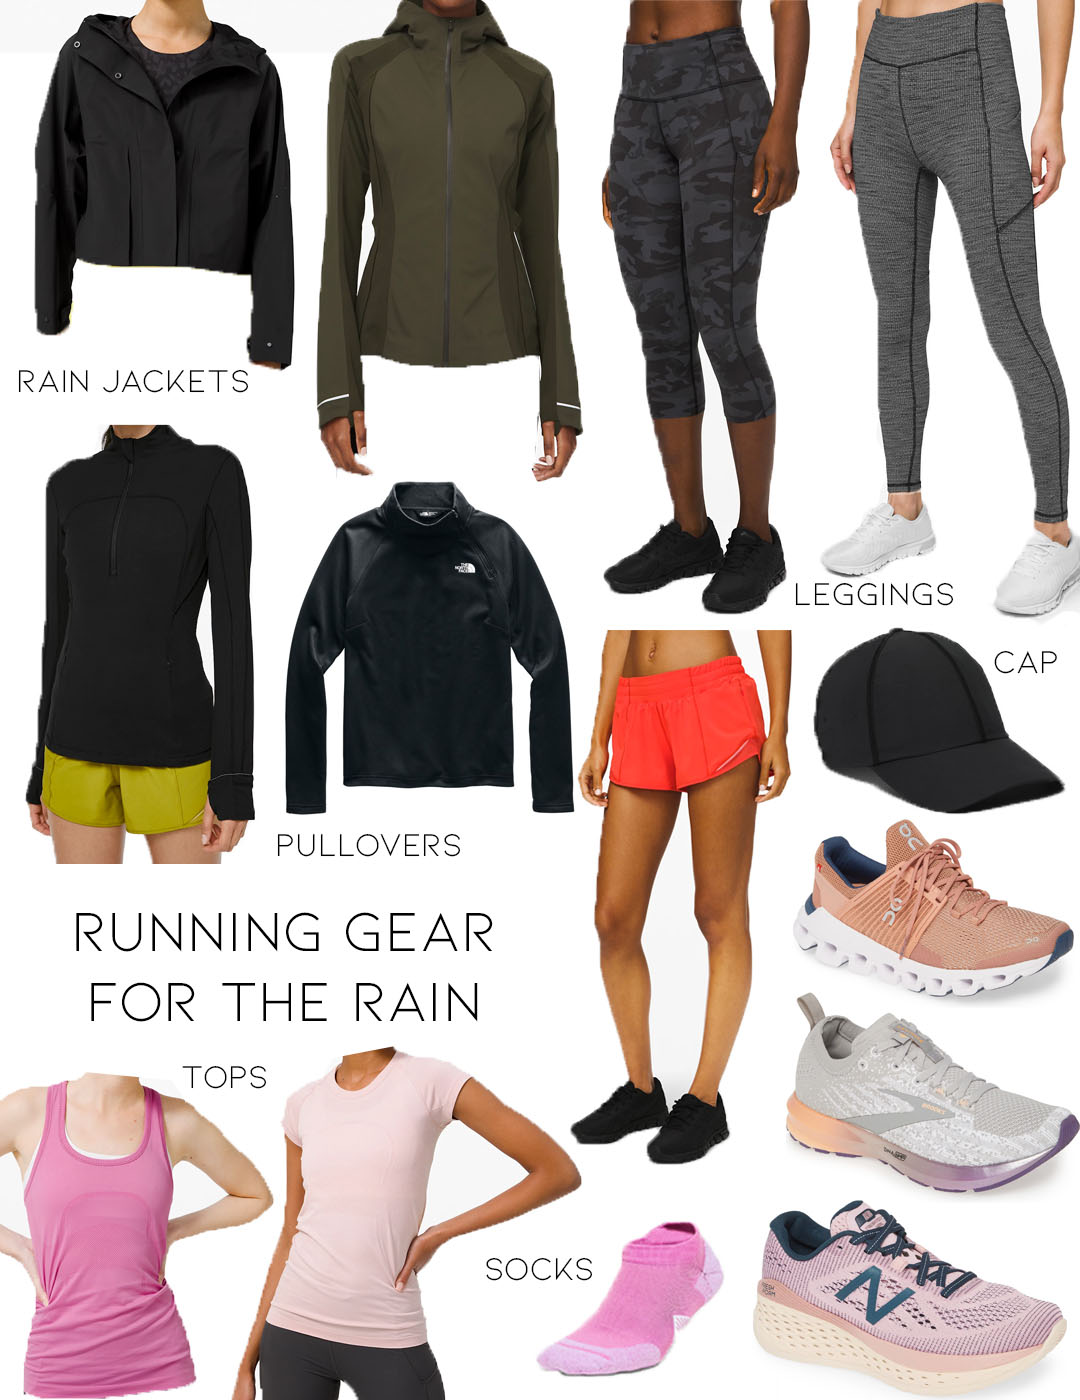 lifestyle and fashion blogger alexis belbel sharing running gear for the rain for her: rain jackets from lululemon, cropped leggings, shorts, running sneakers from brooks, new balalnce, and tops for running   adoubledose.com